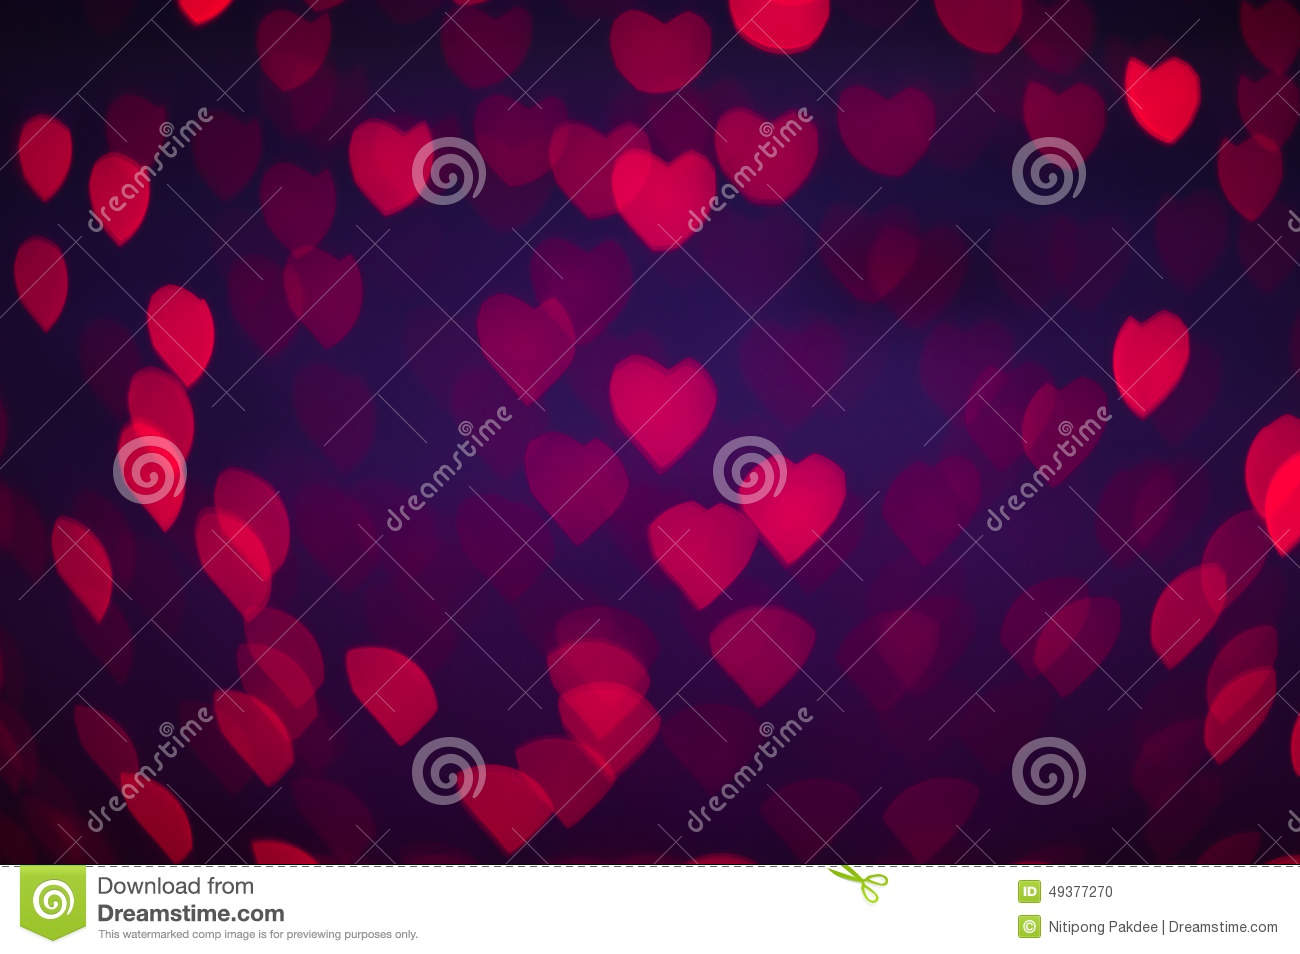 Blure Bokeh Heart Wallpapers And Background Stock Photo Image Of